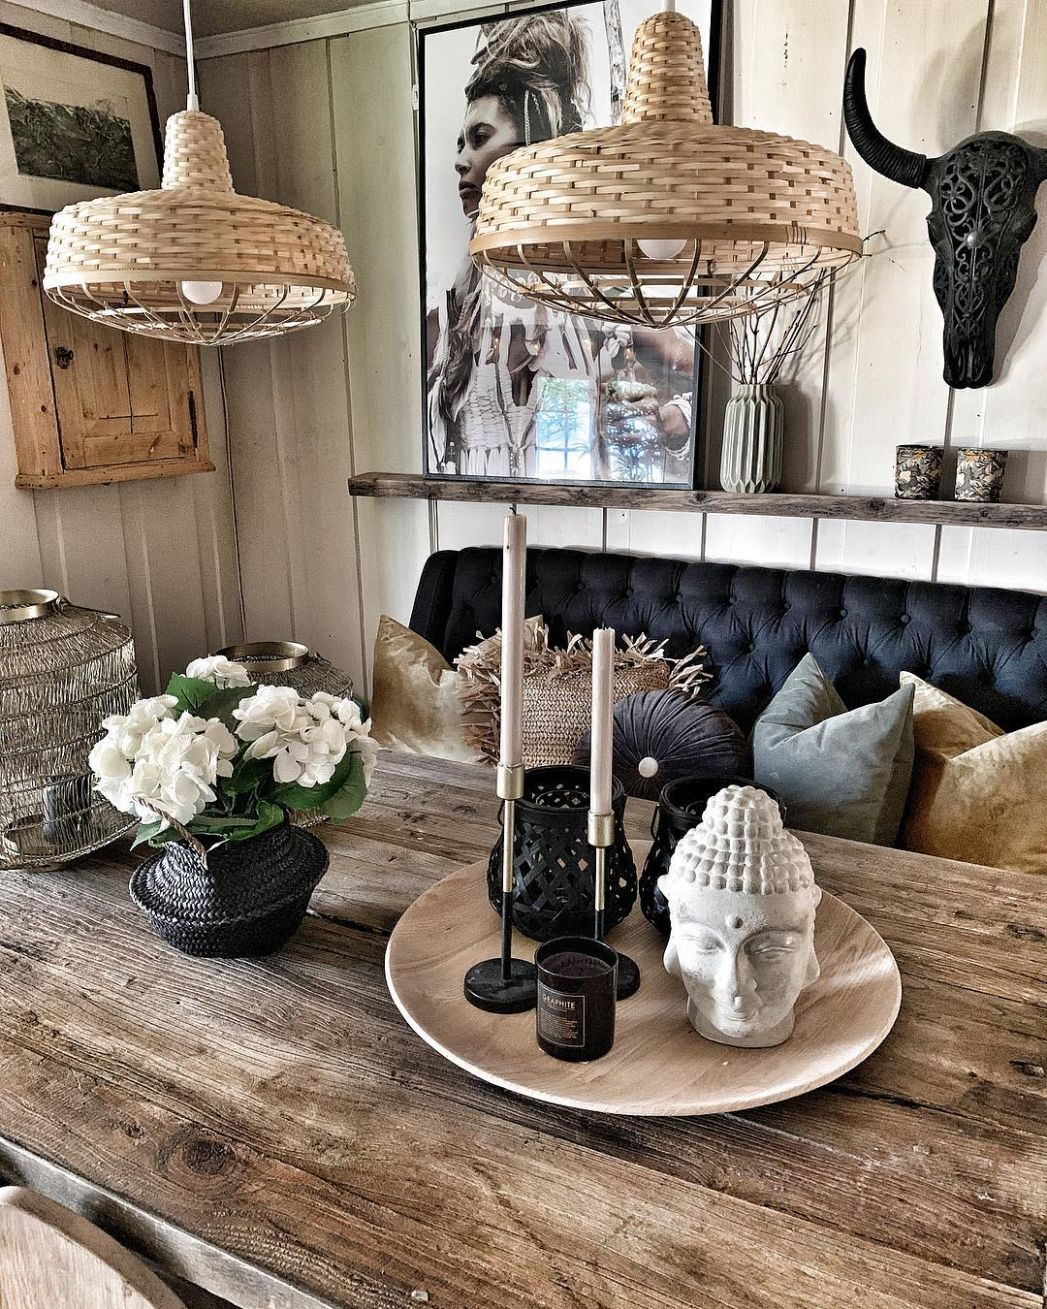 8 Amazing Home Decor Accounts You Must Follow on Instagram ..